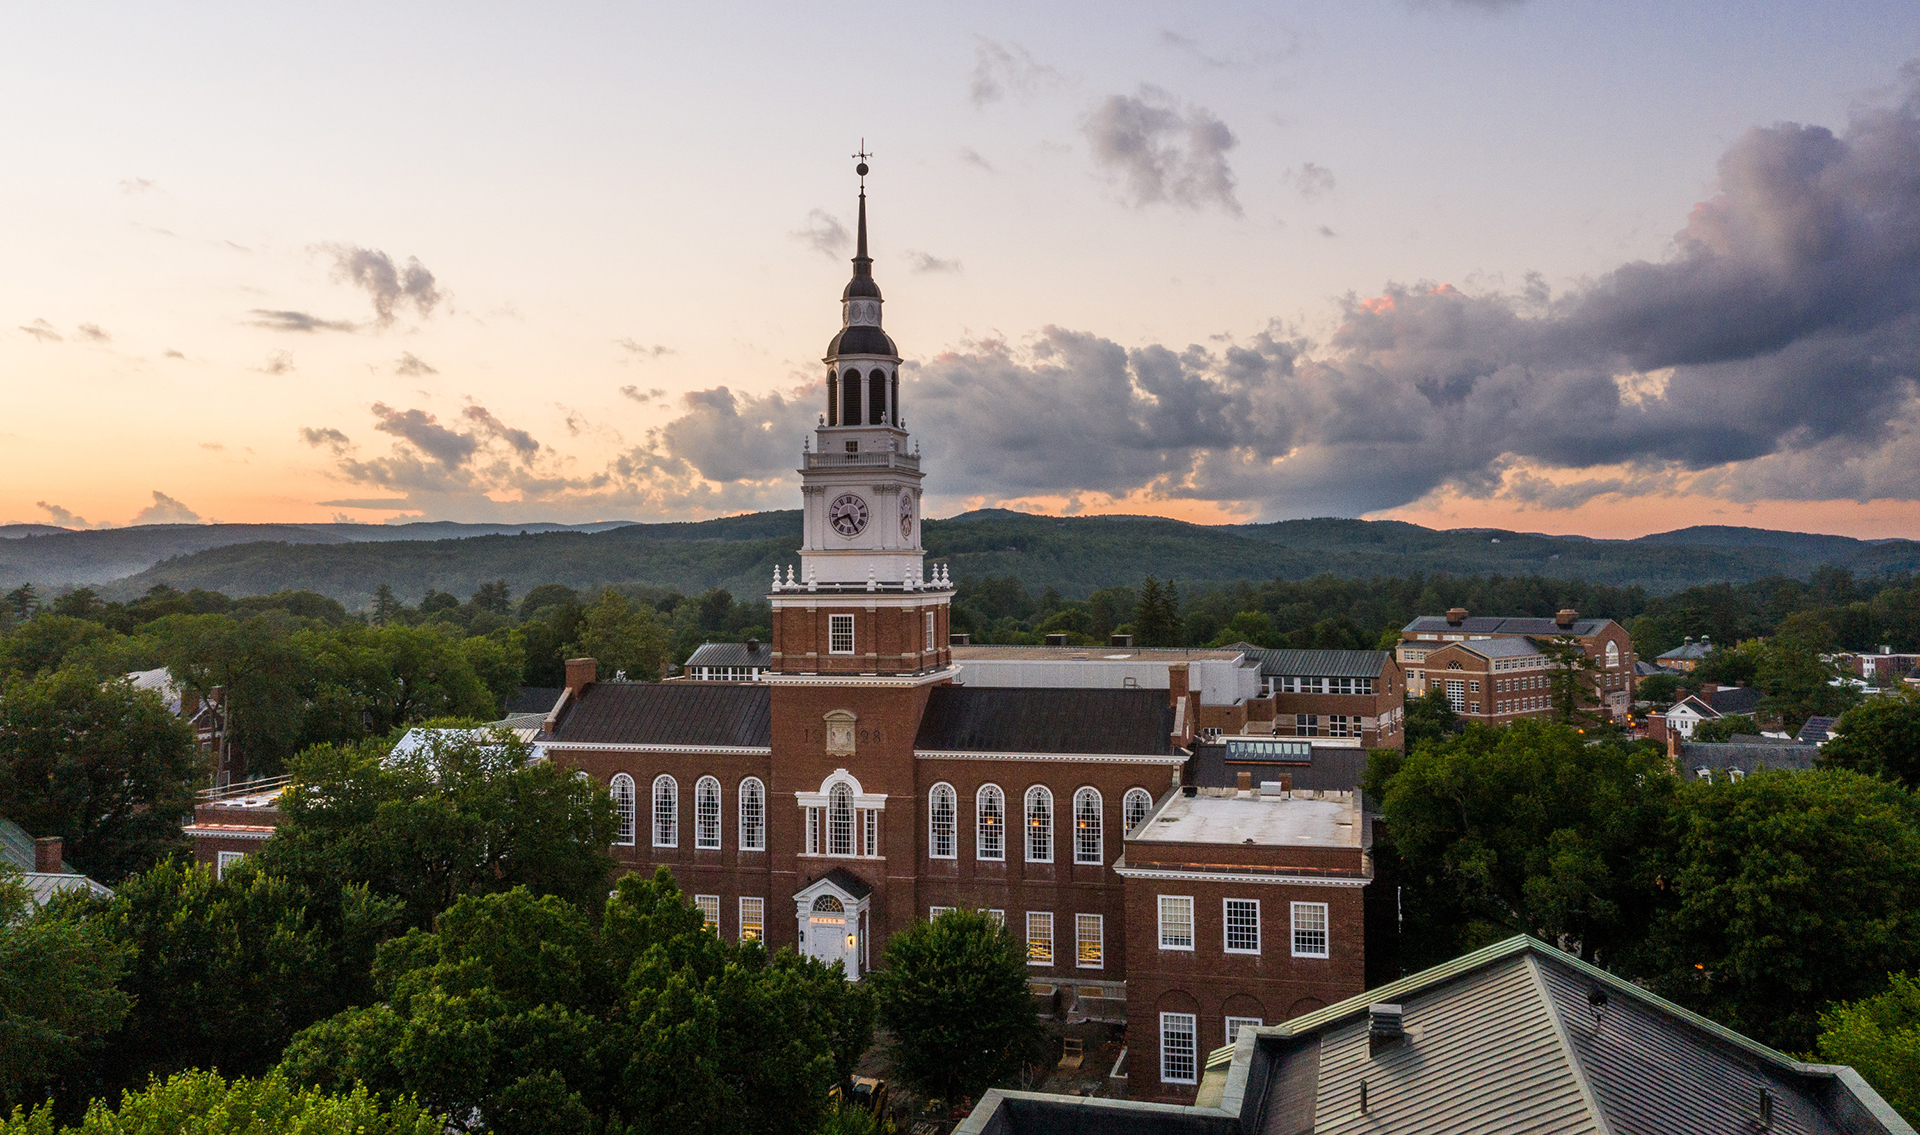 A photo of Baker Library with a sunset in the background